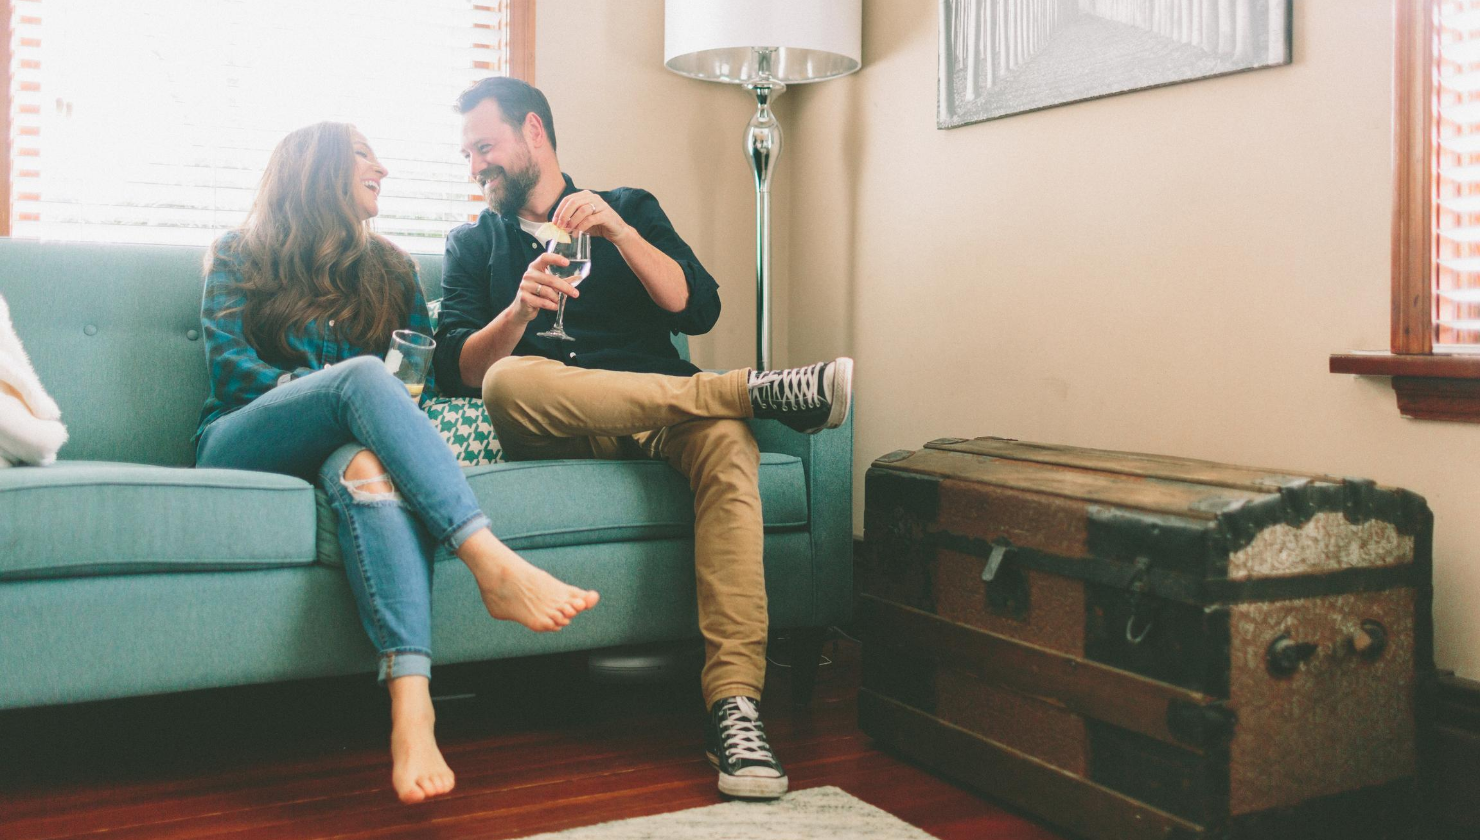 Featured Listing: Dating App